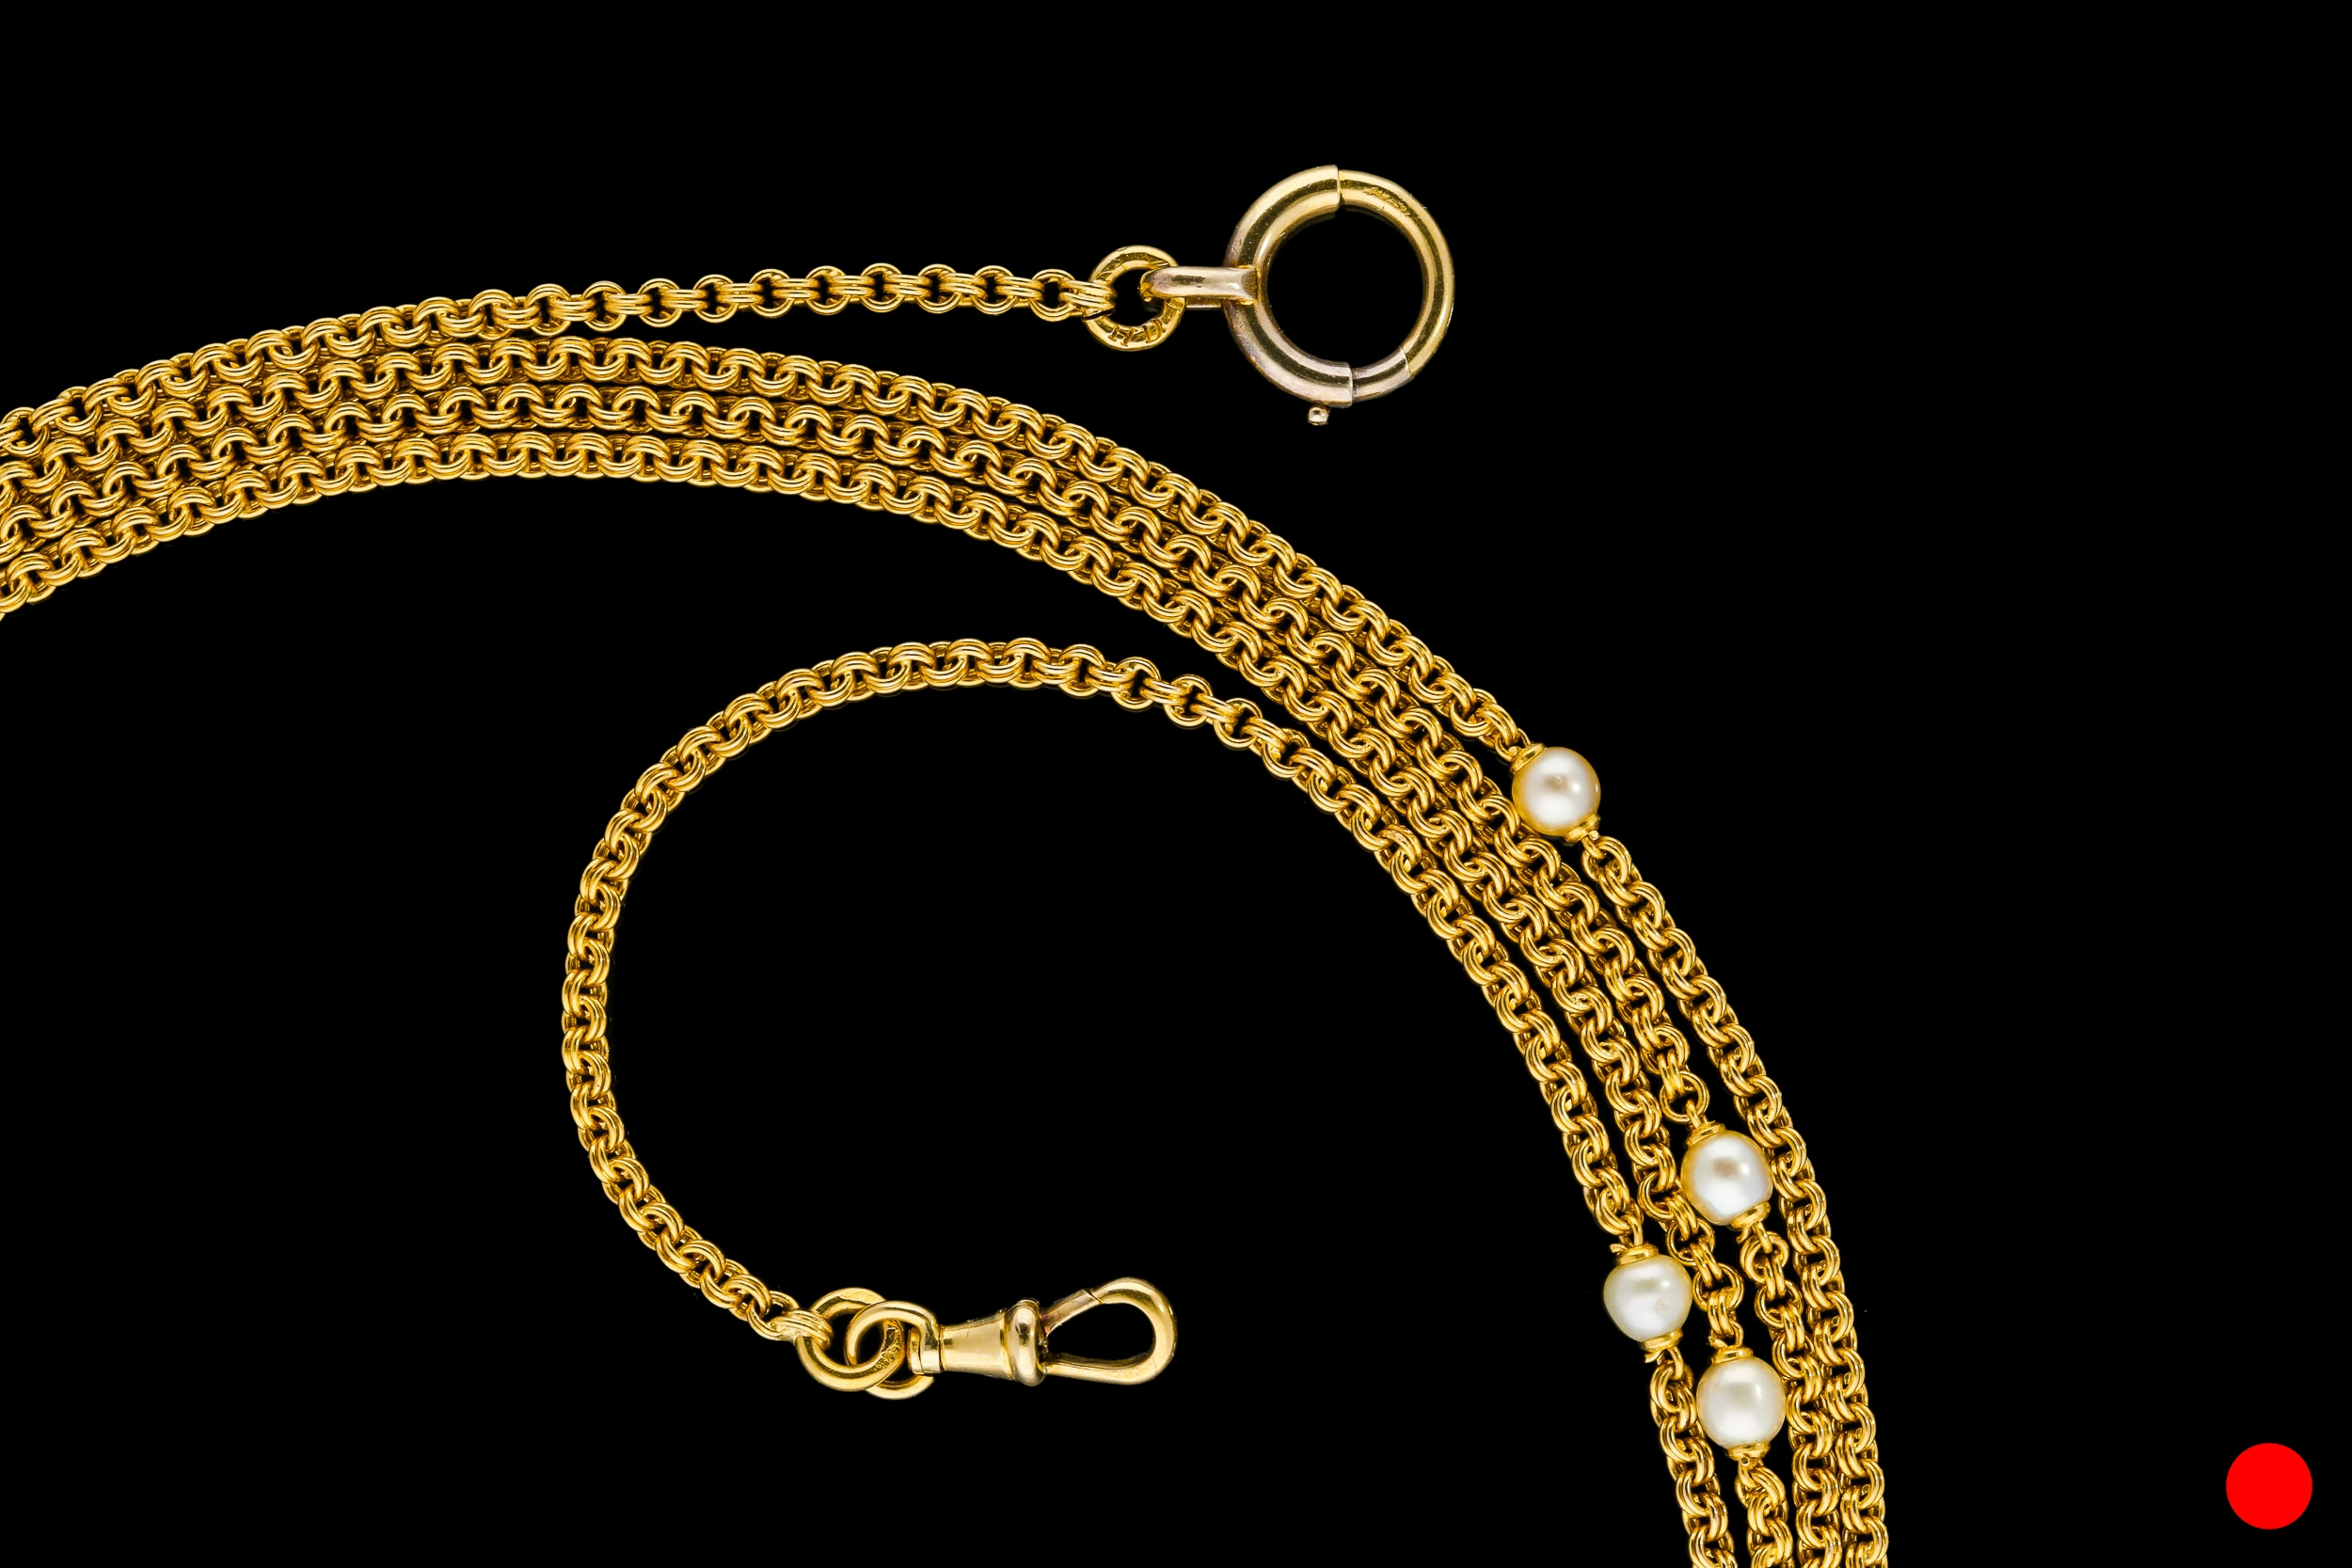 A French 18ct yellow gold round link guard chain set with pearls | £3100